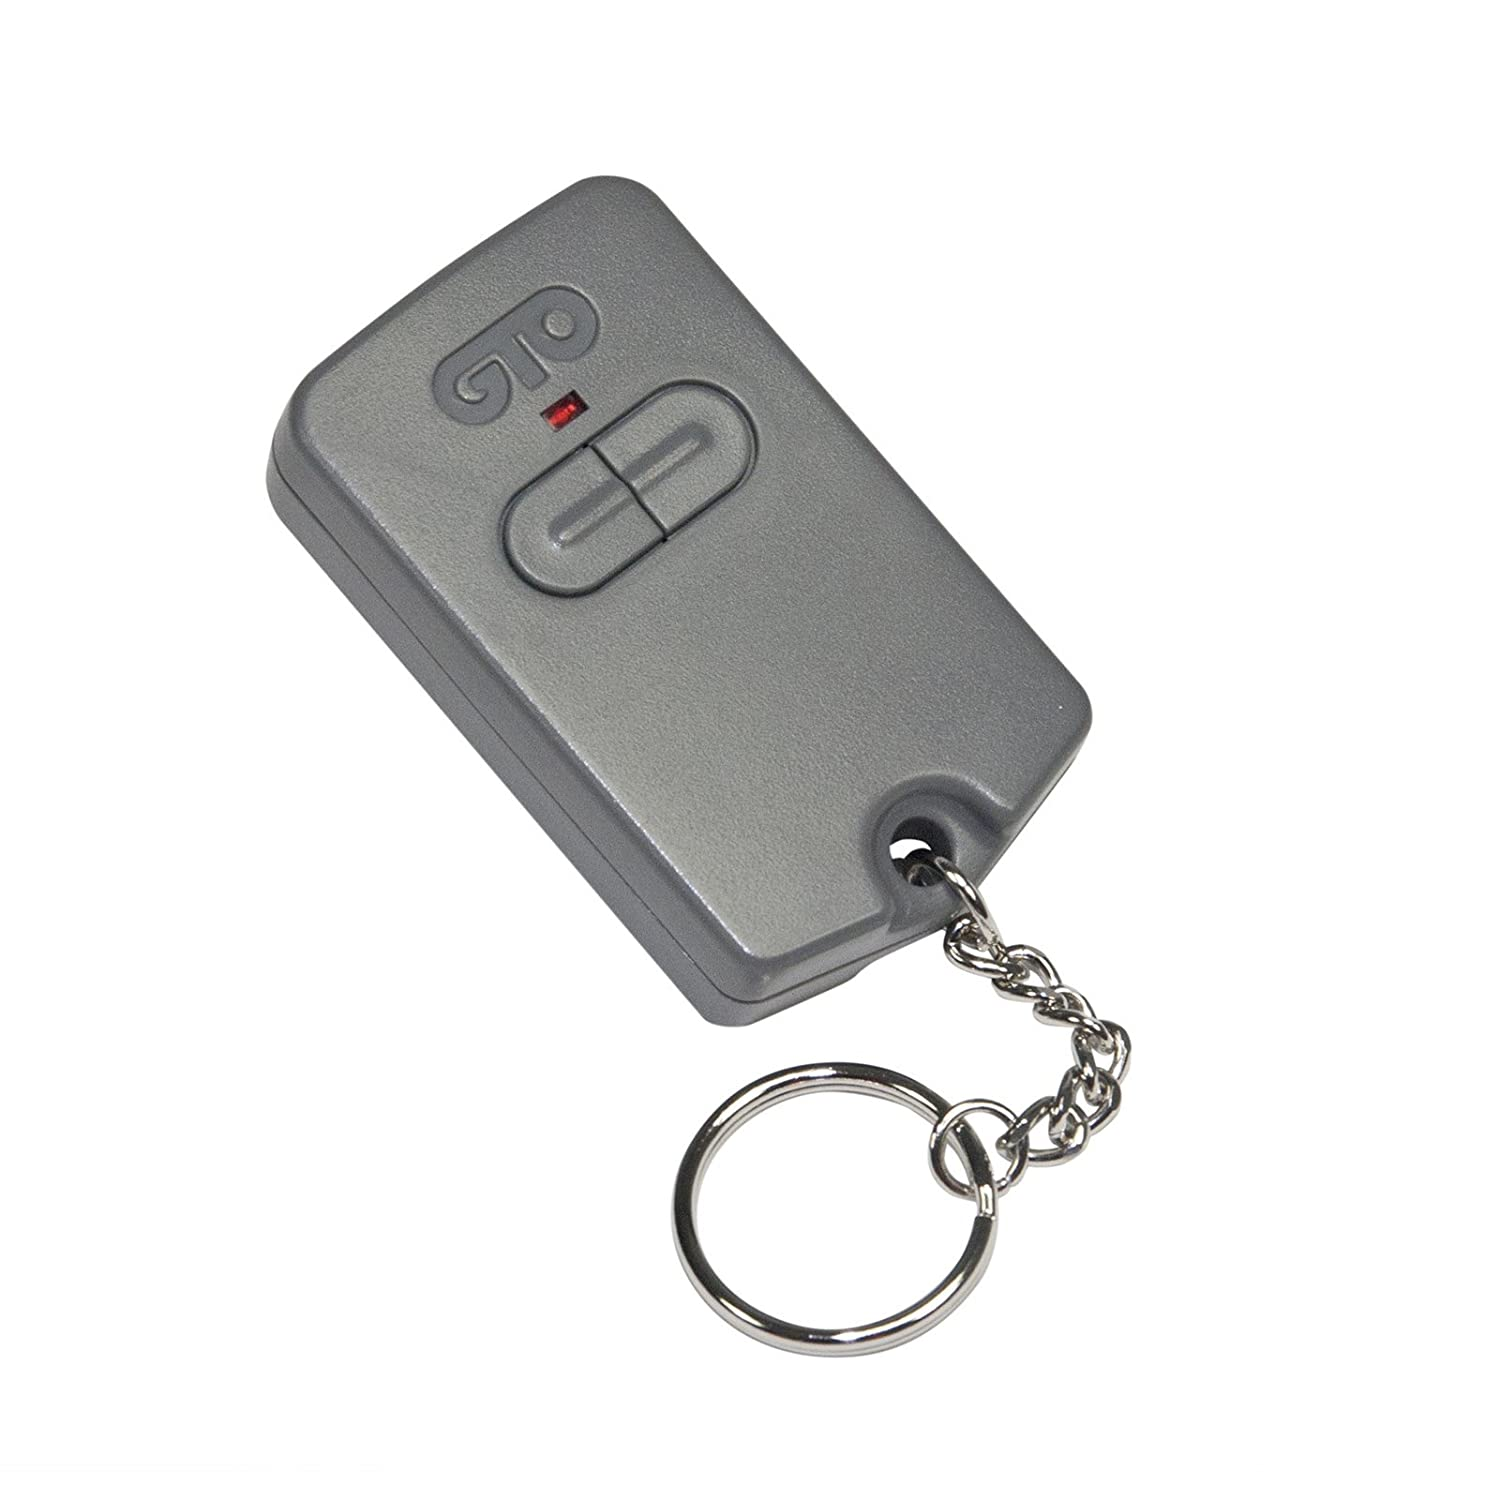 本物品質の Mighty Gate Mighty Mule Dual Button Gate Opener Remote (FM134) [並行輸入品] [並行輸入品] B01N2T6KNP, mischief:02287f22 --- arianechie.dominiotemporario.com